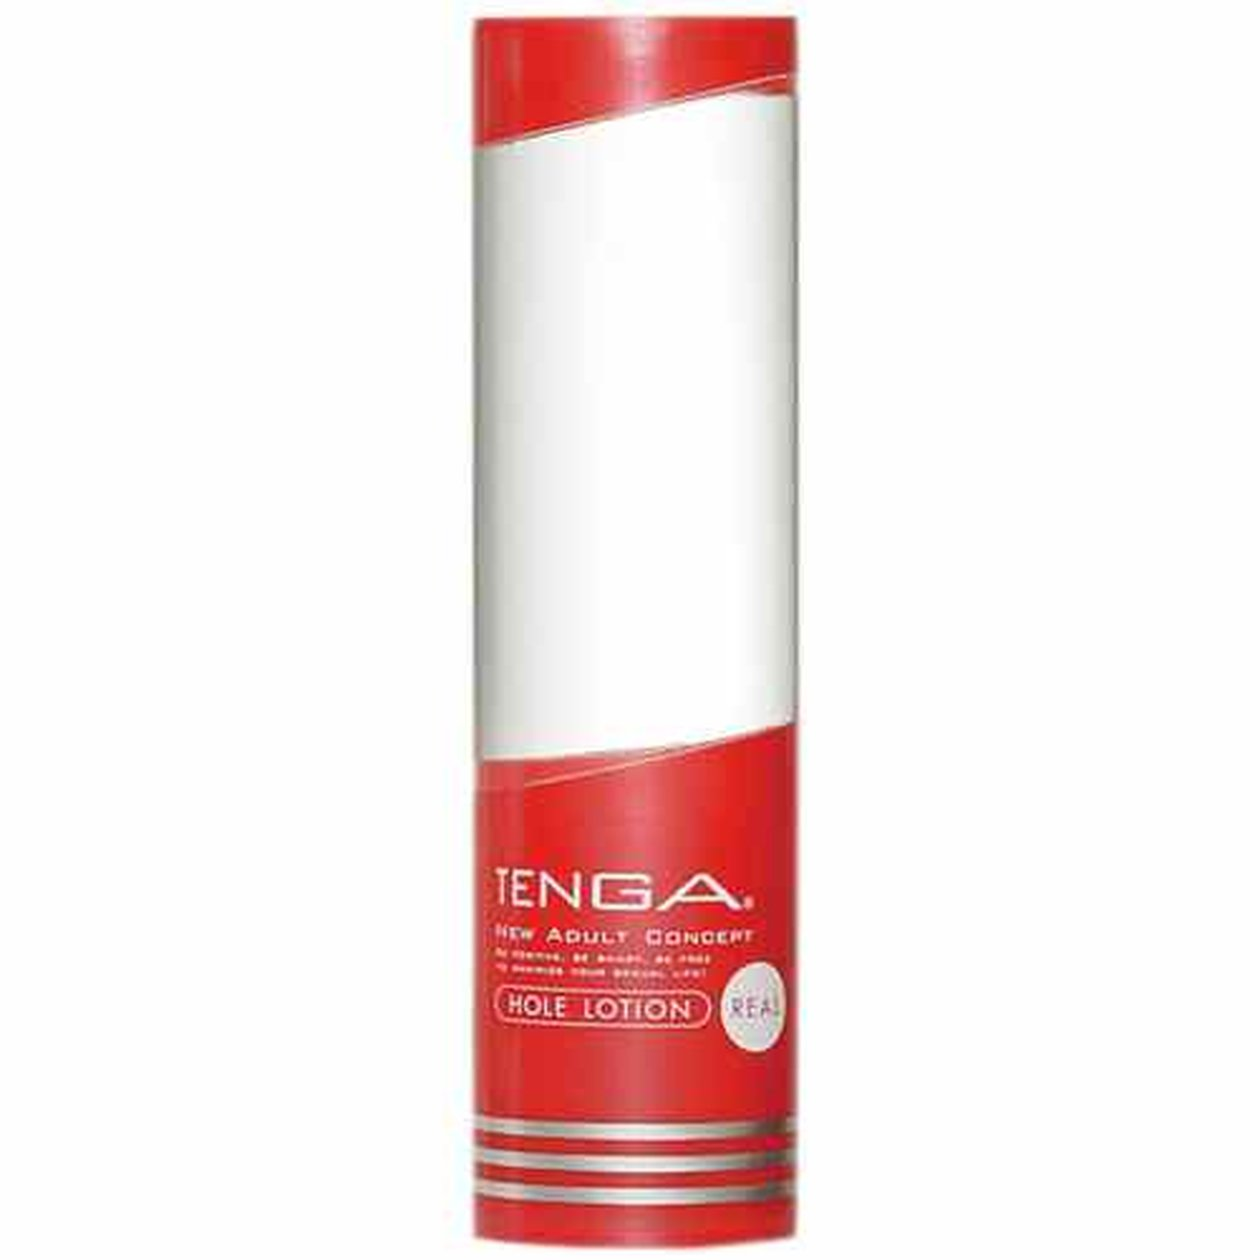 Tenga - Hole Lotion Lubricant Real